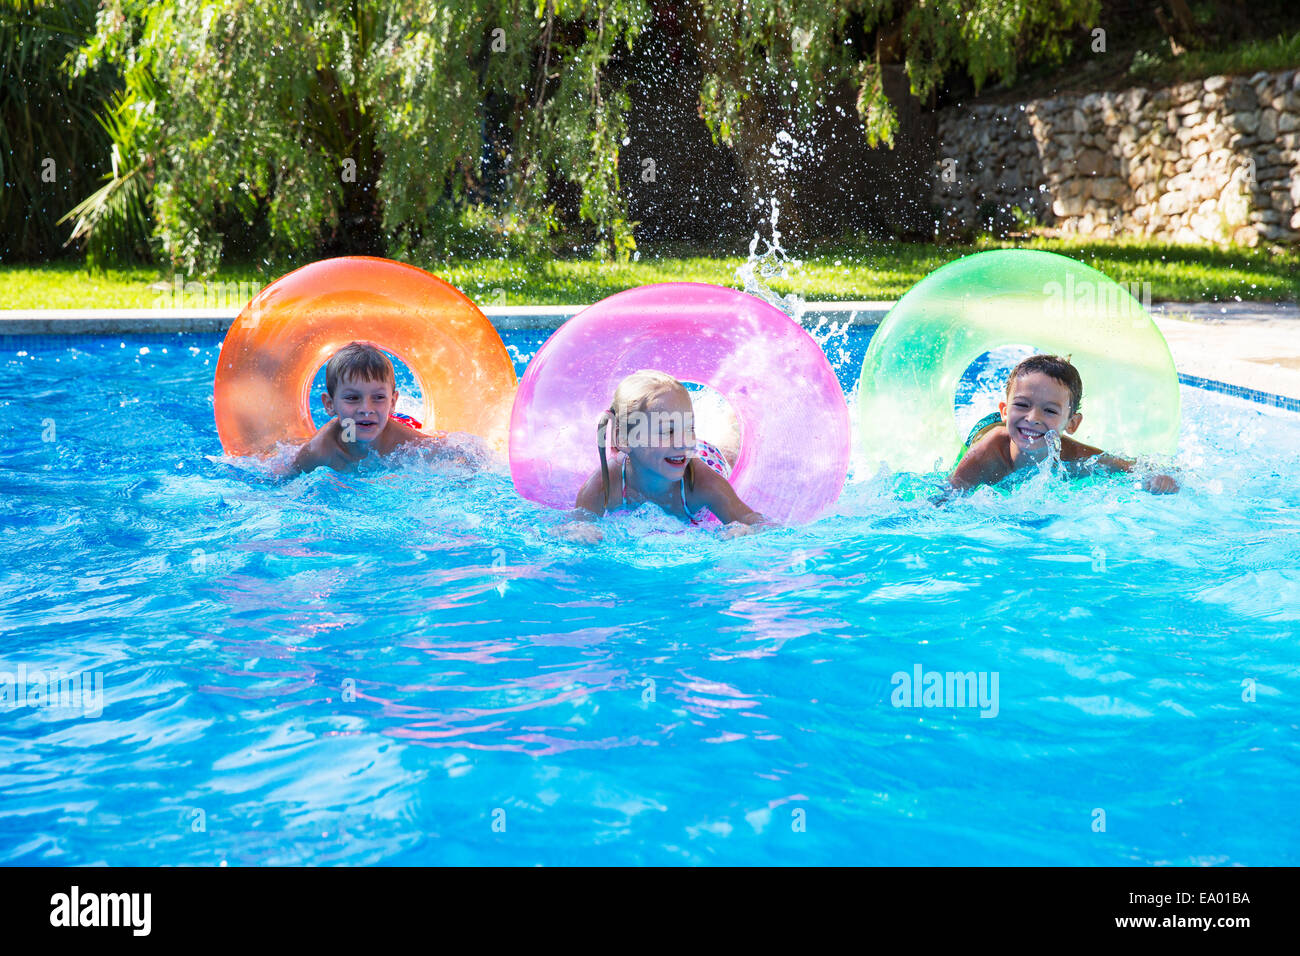 Three children racing on inflatable rings in garden for Kids swimming pool garden